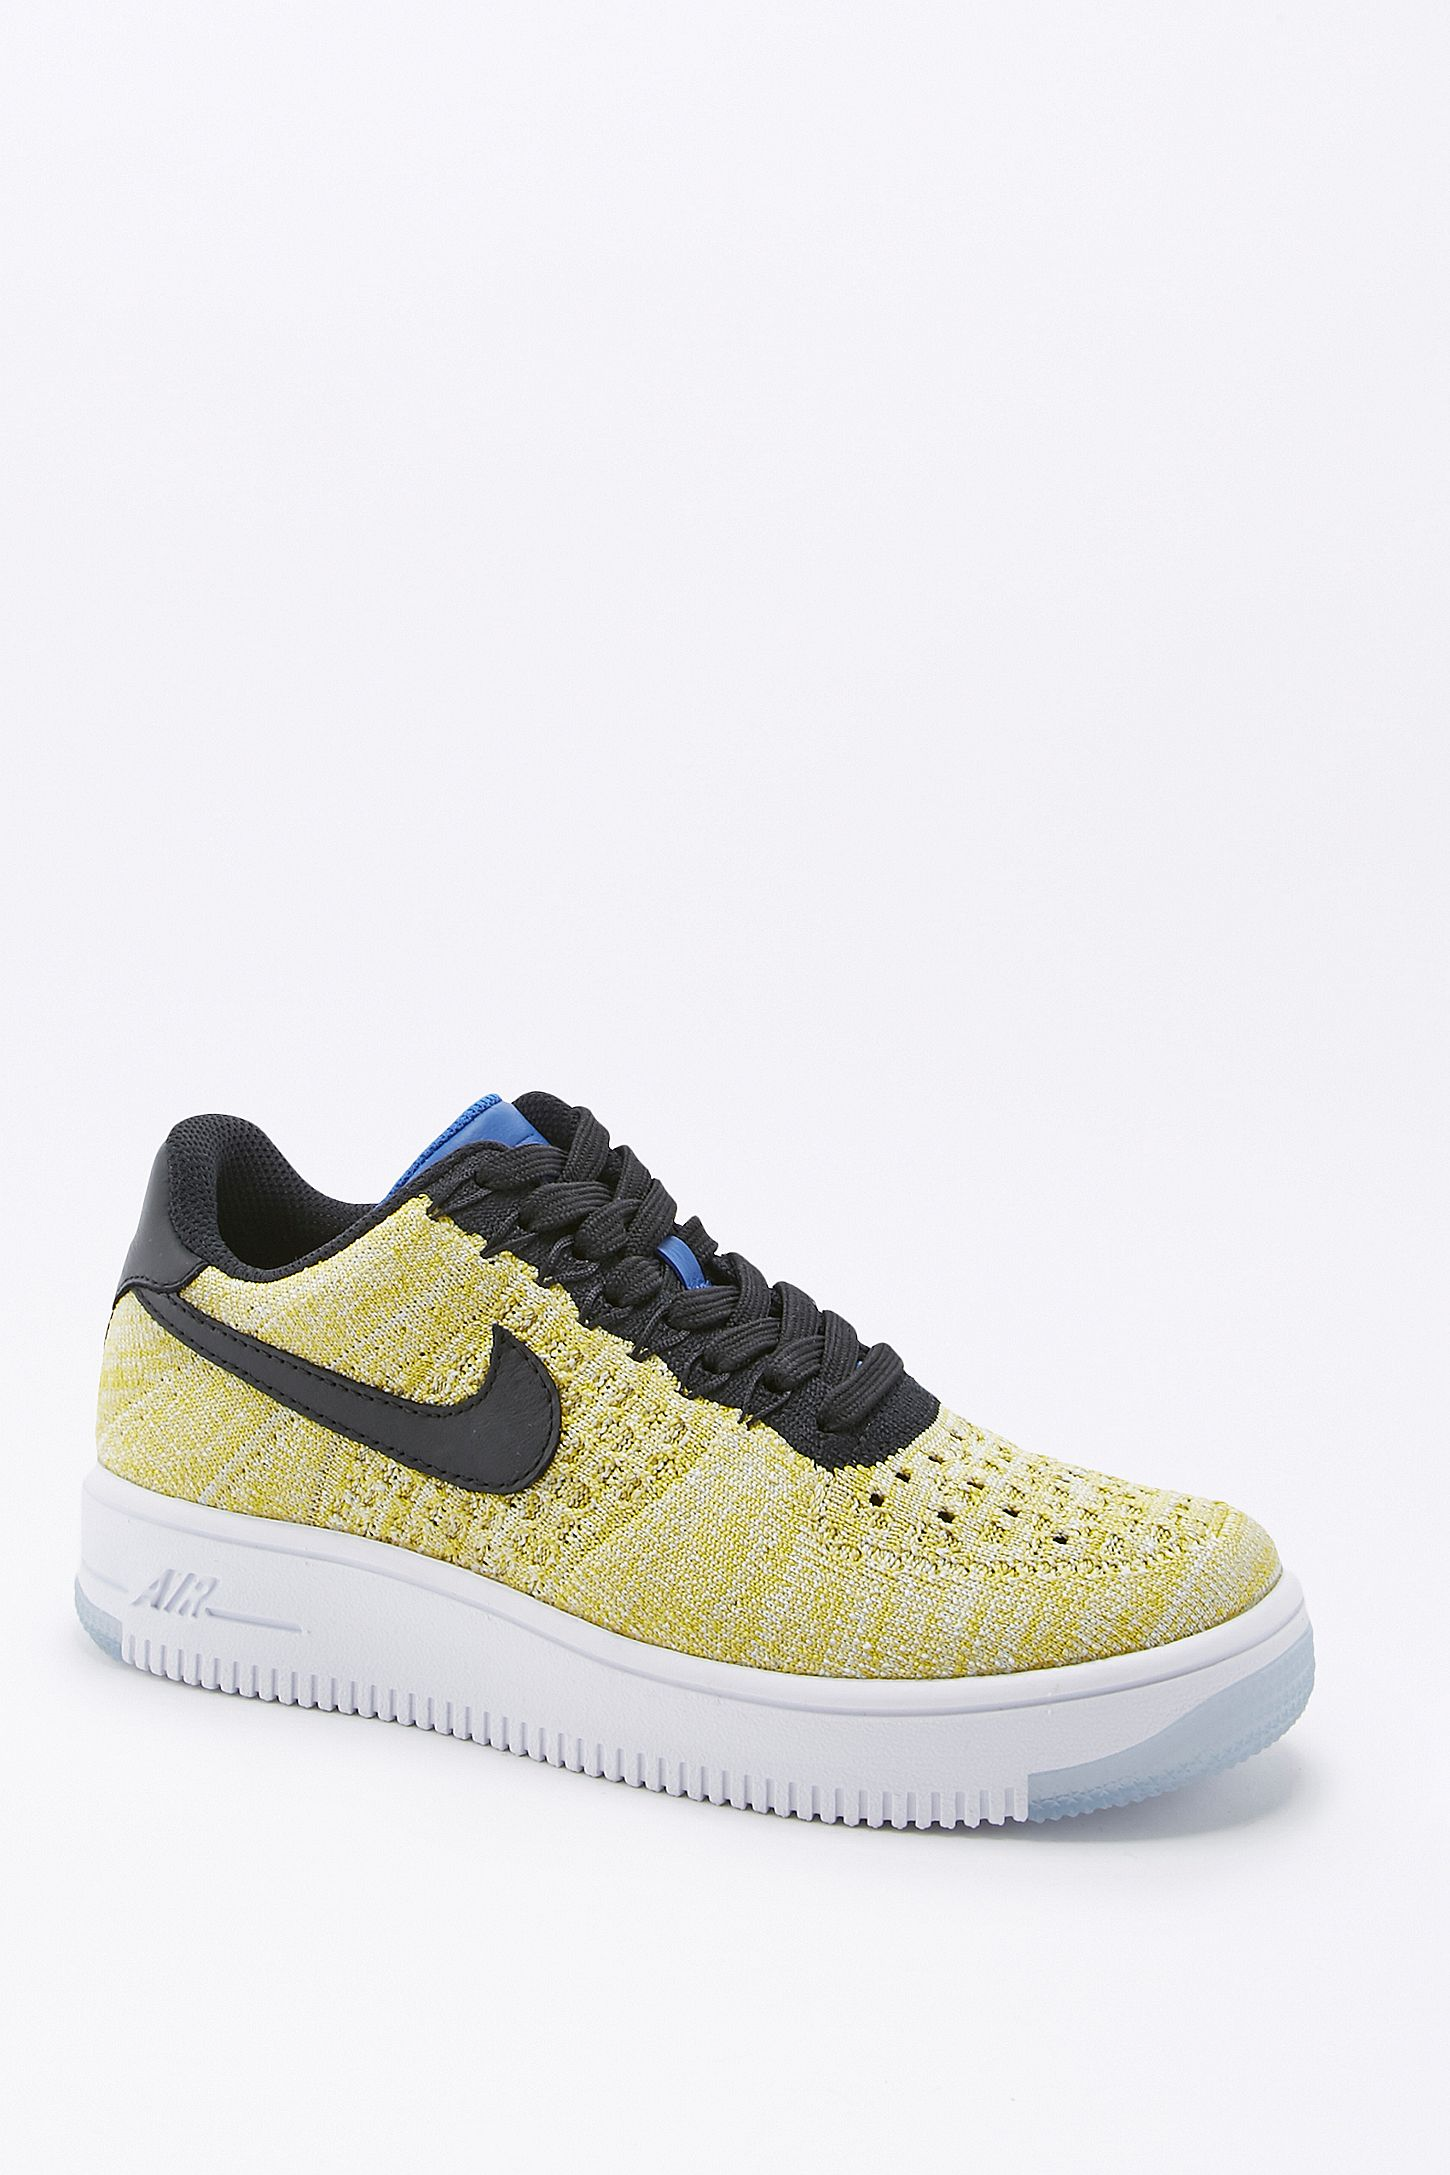 promo code 9957a 8309e Nike Air Force 1 Flyknit Dark Yellow Trainers. Click on image to zoom.  Hover to zoom. Double Tap to Zoom